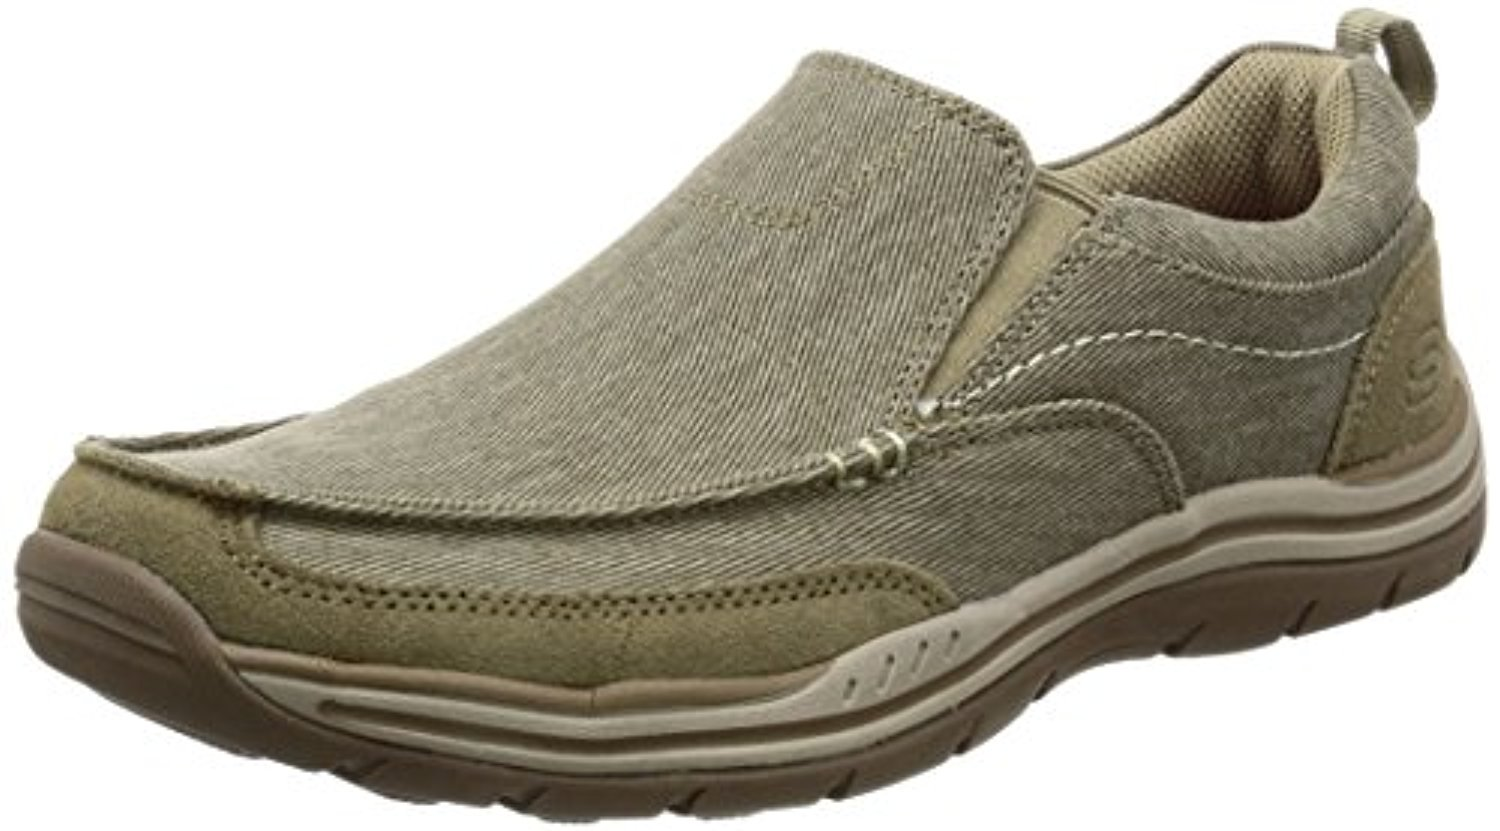 64928 Khaki Skechers Shoes Men Canvas Memory Foam Slip On Comfort Loafer Casual by Skechers